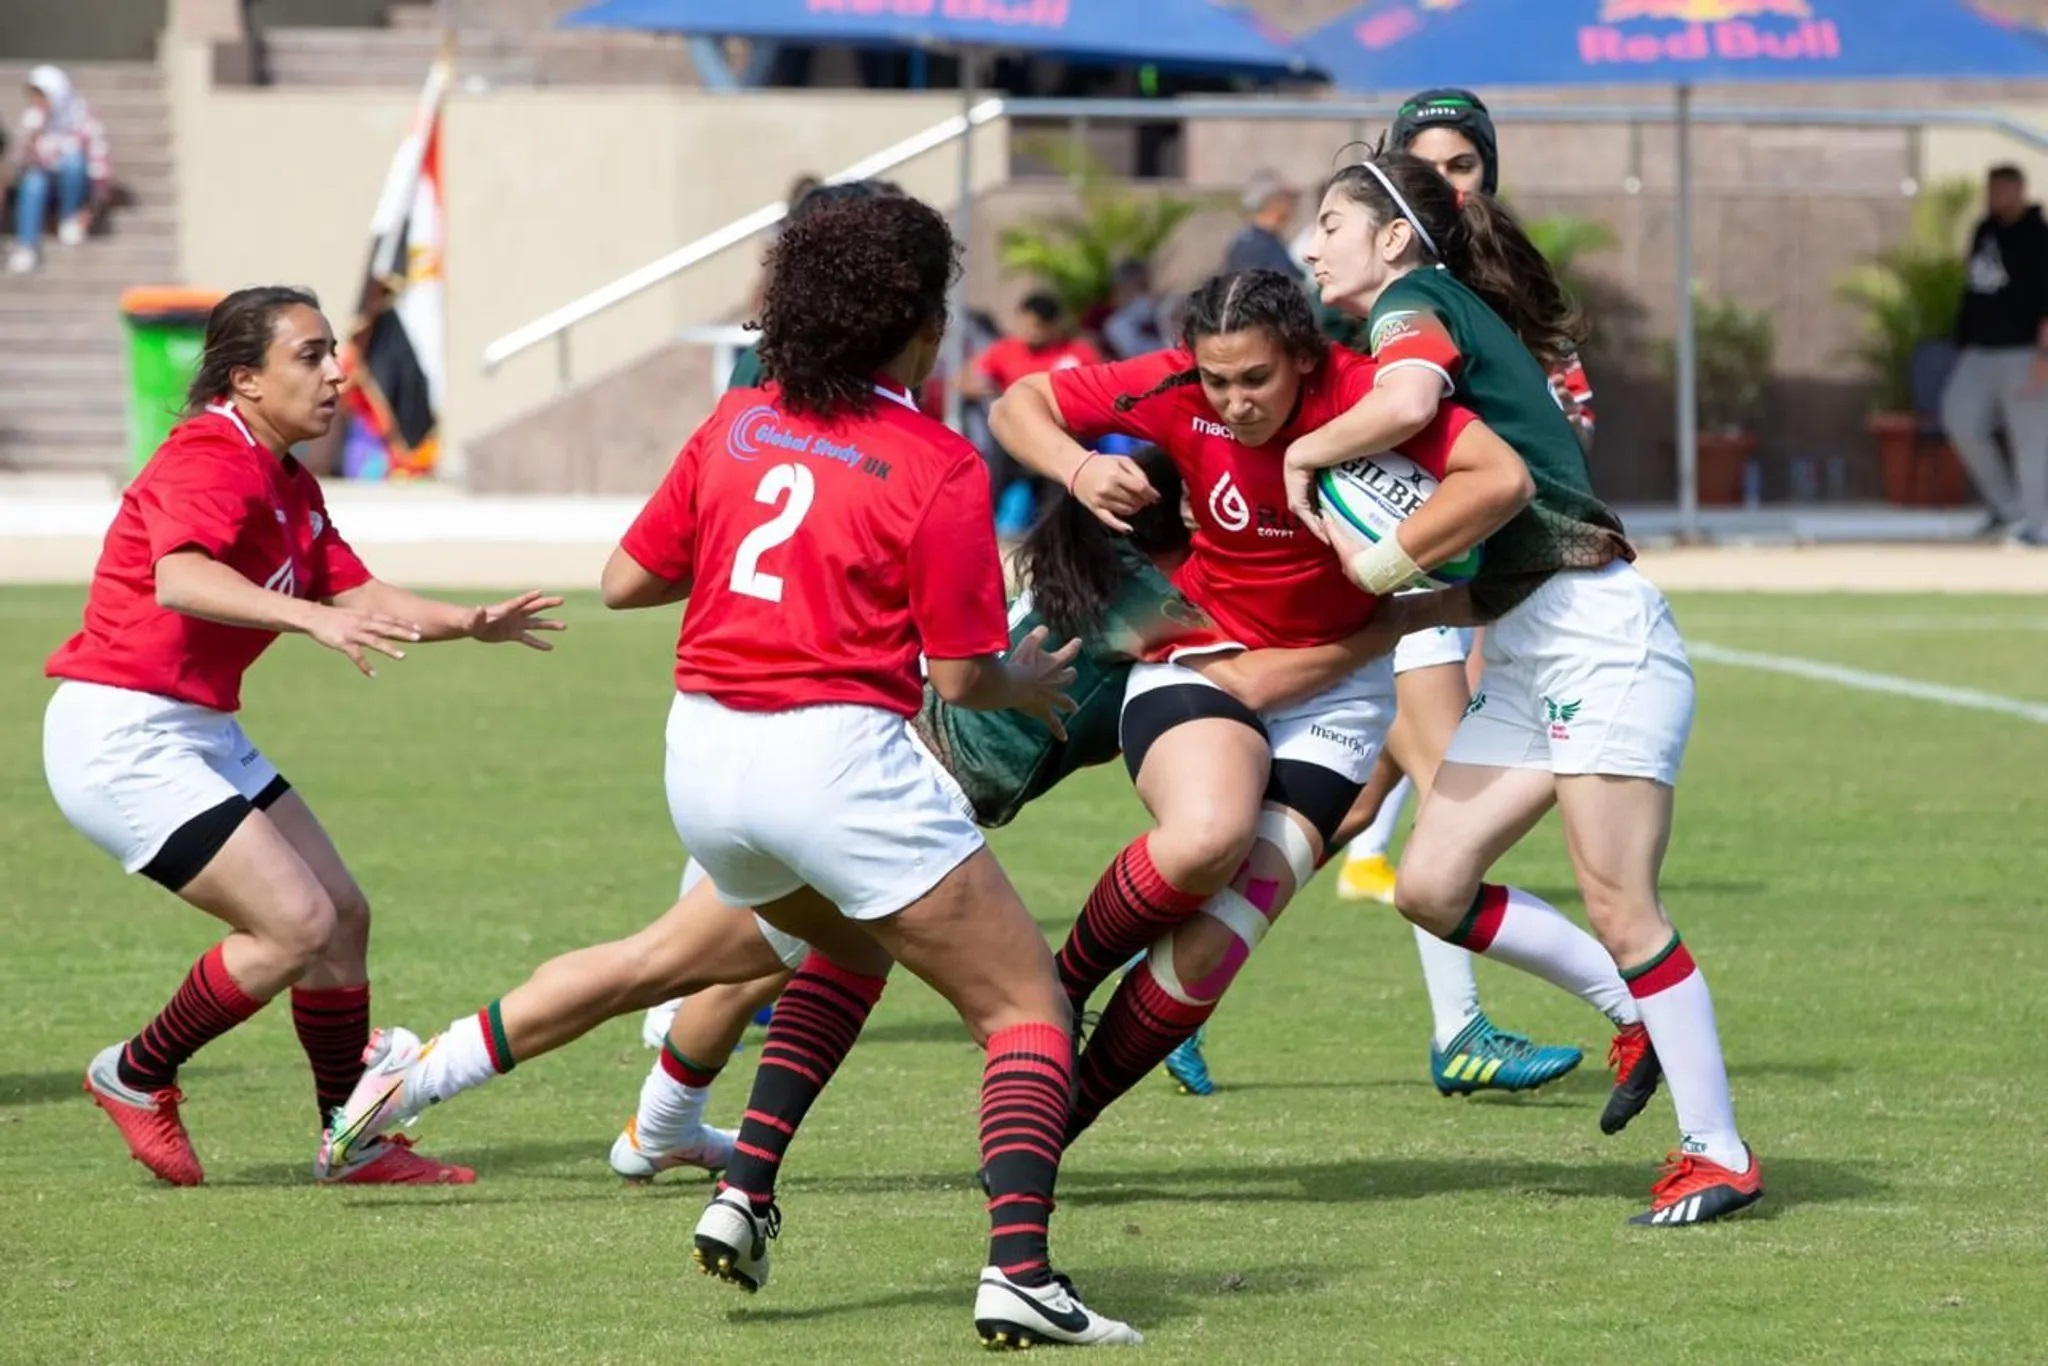 More people talking about rugby in Egypt after women's Arab Sevens success